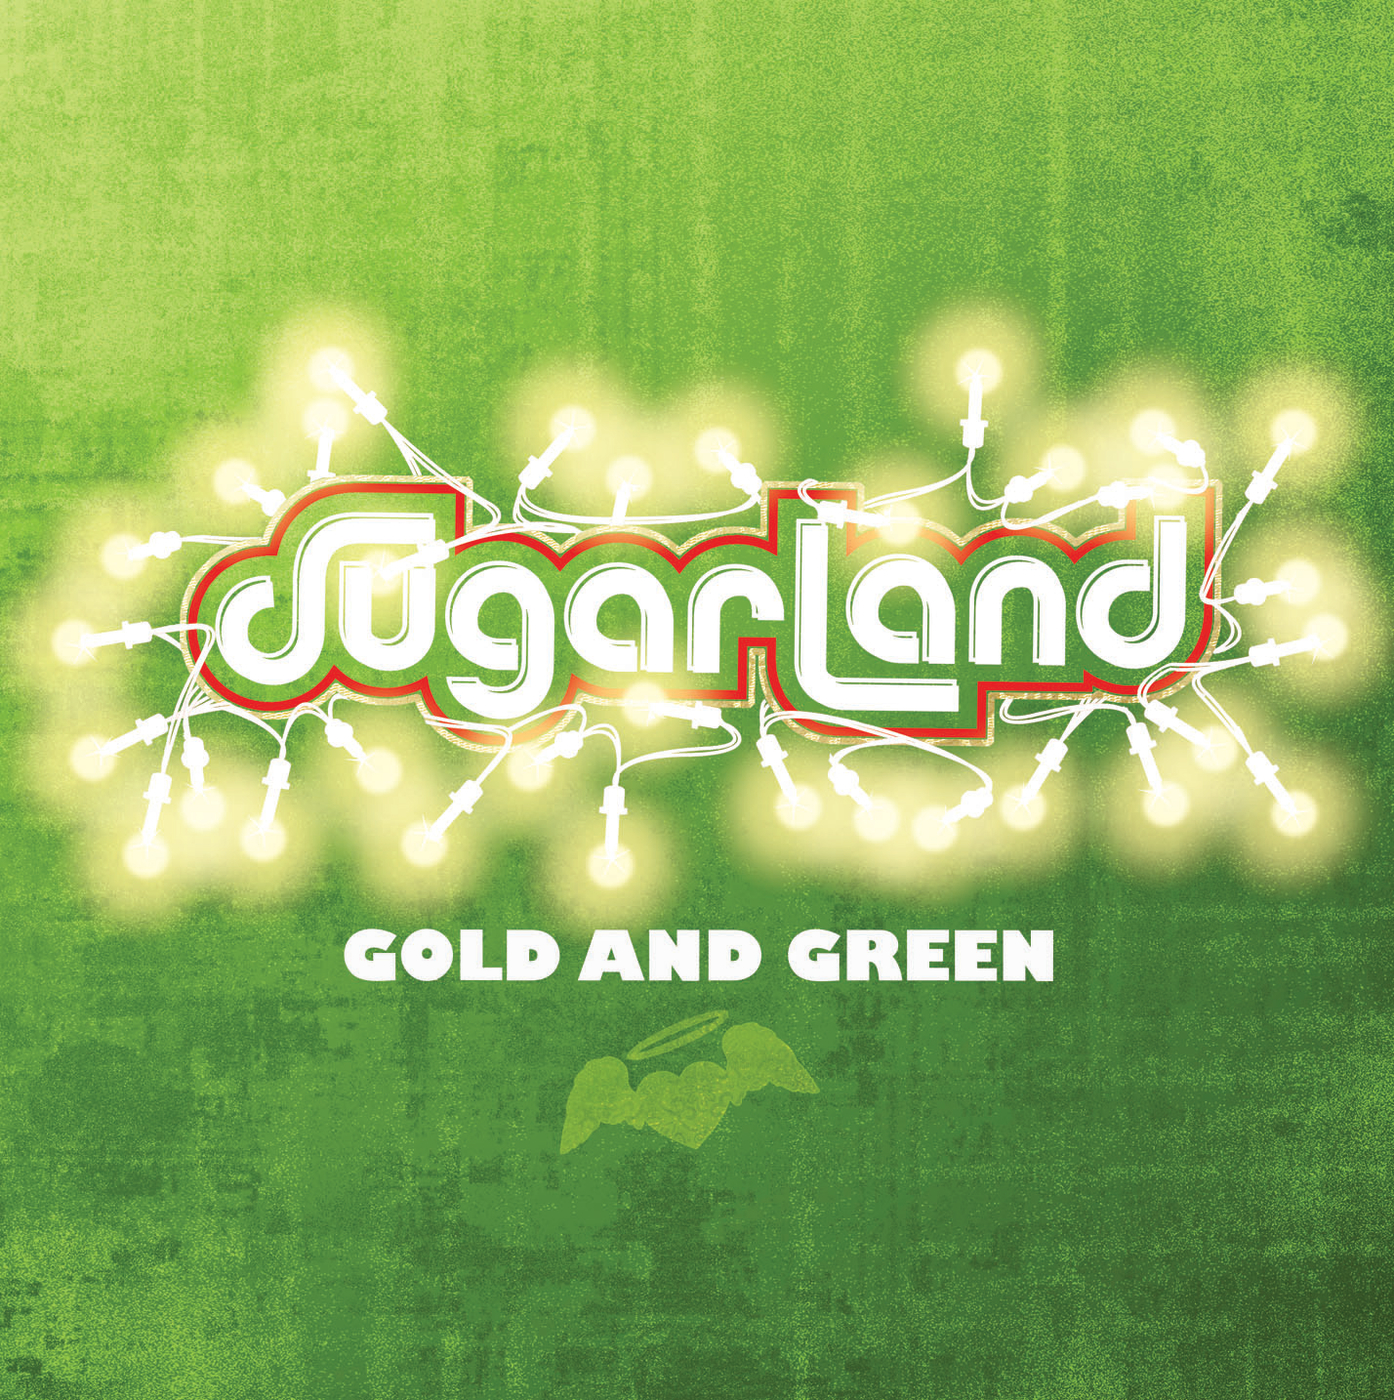 Listen Free to Sugarland - Nuttin\' For Christmas Radio | iHeartRadio